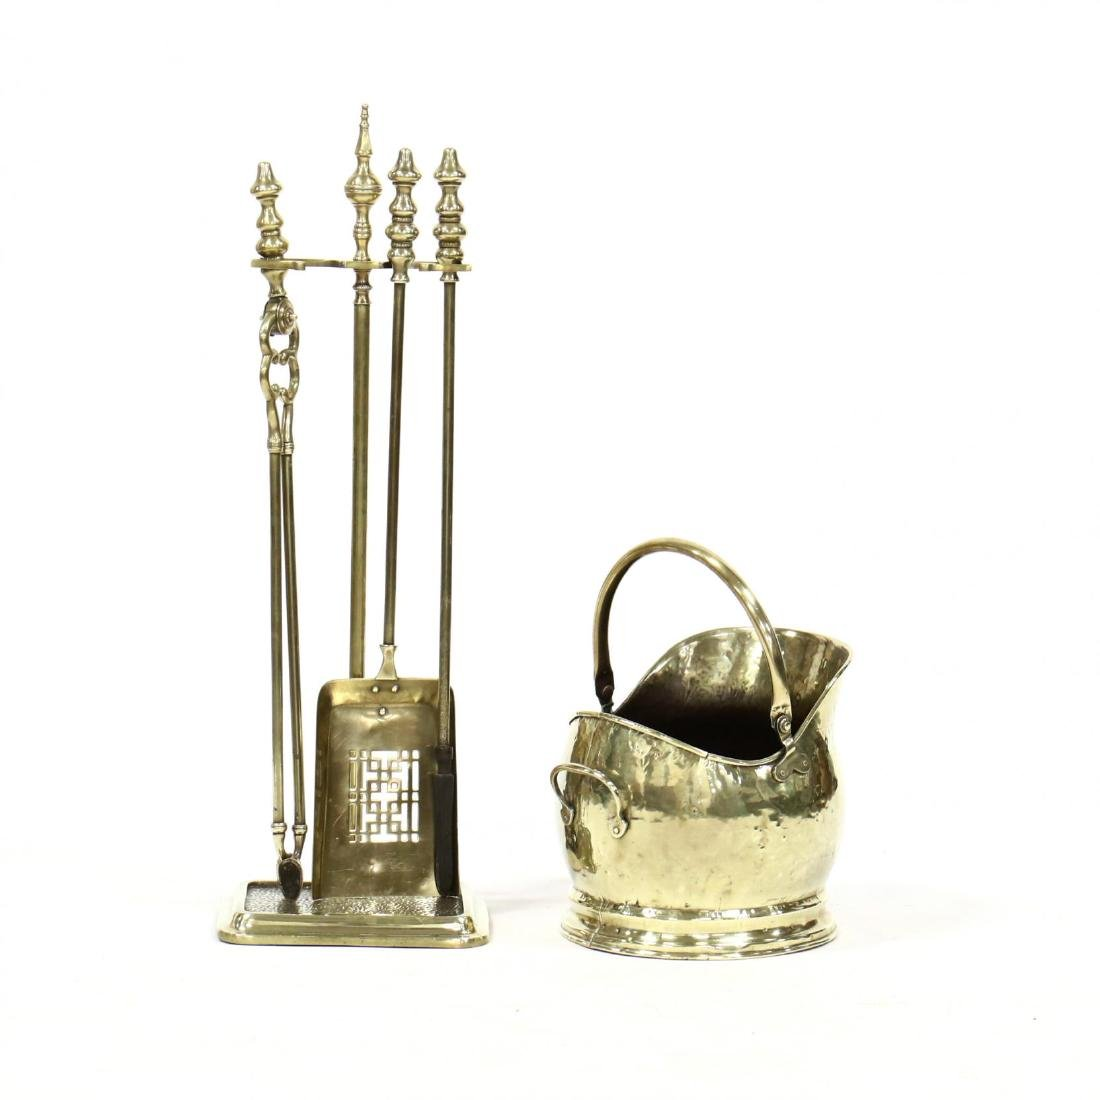 Vintage Brass Fireplace Tools and Coal Bucket